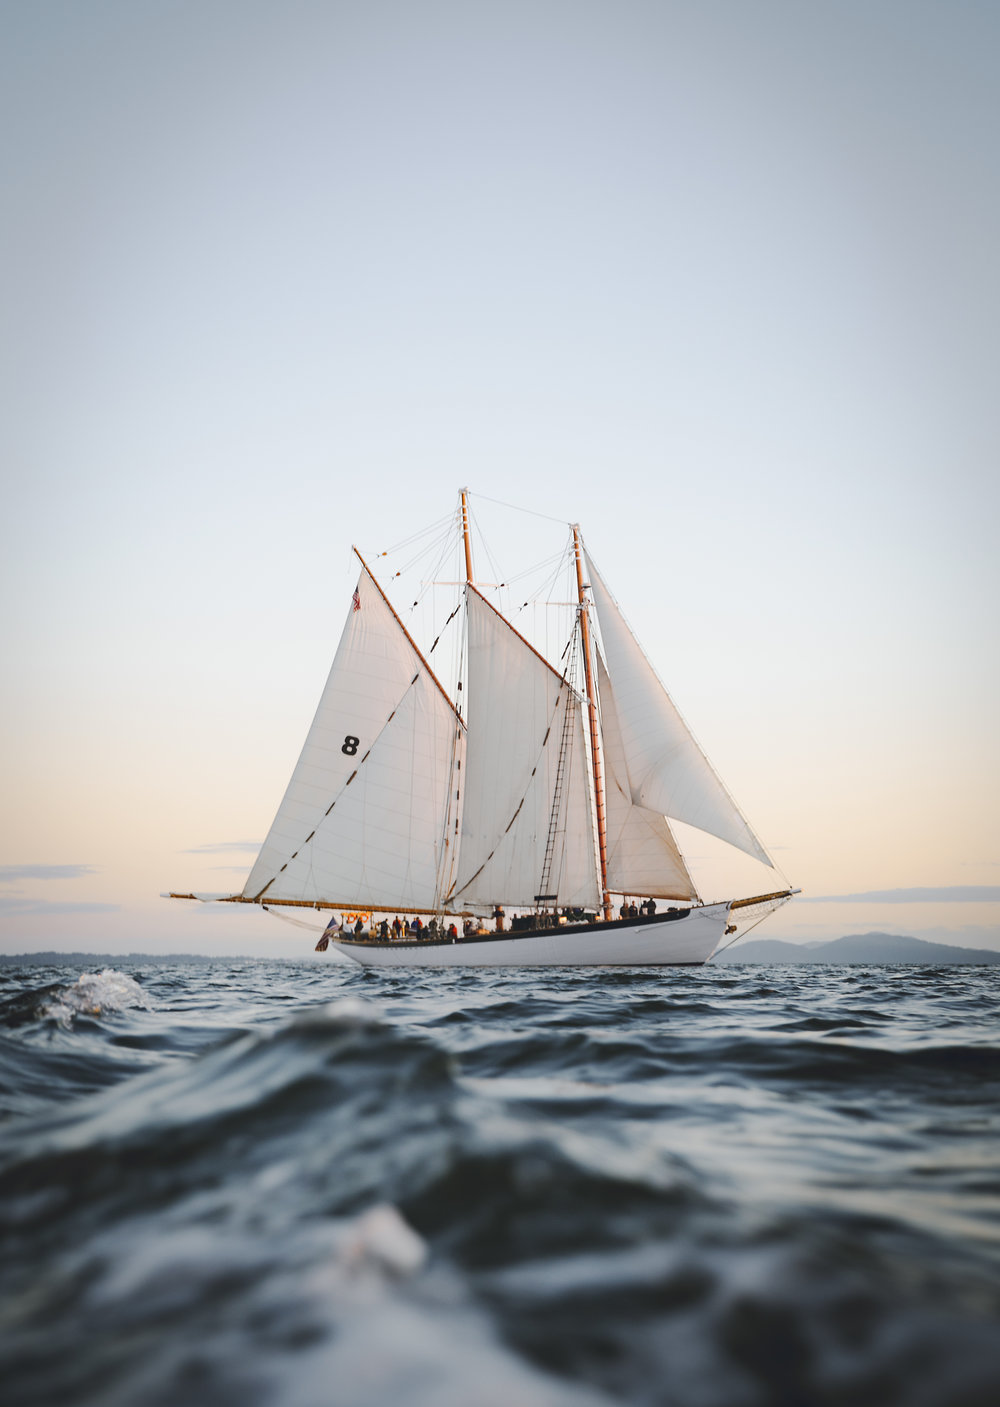 The Schooner Zodiac, Bellingham, Washington